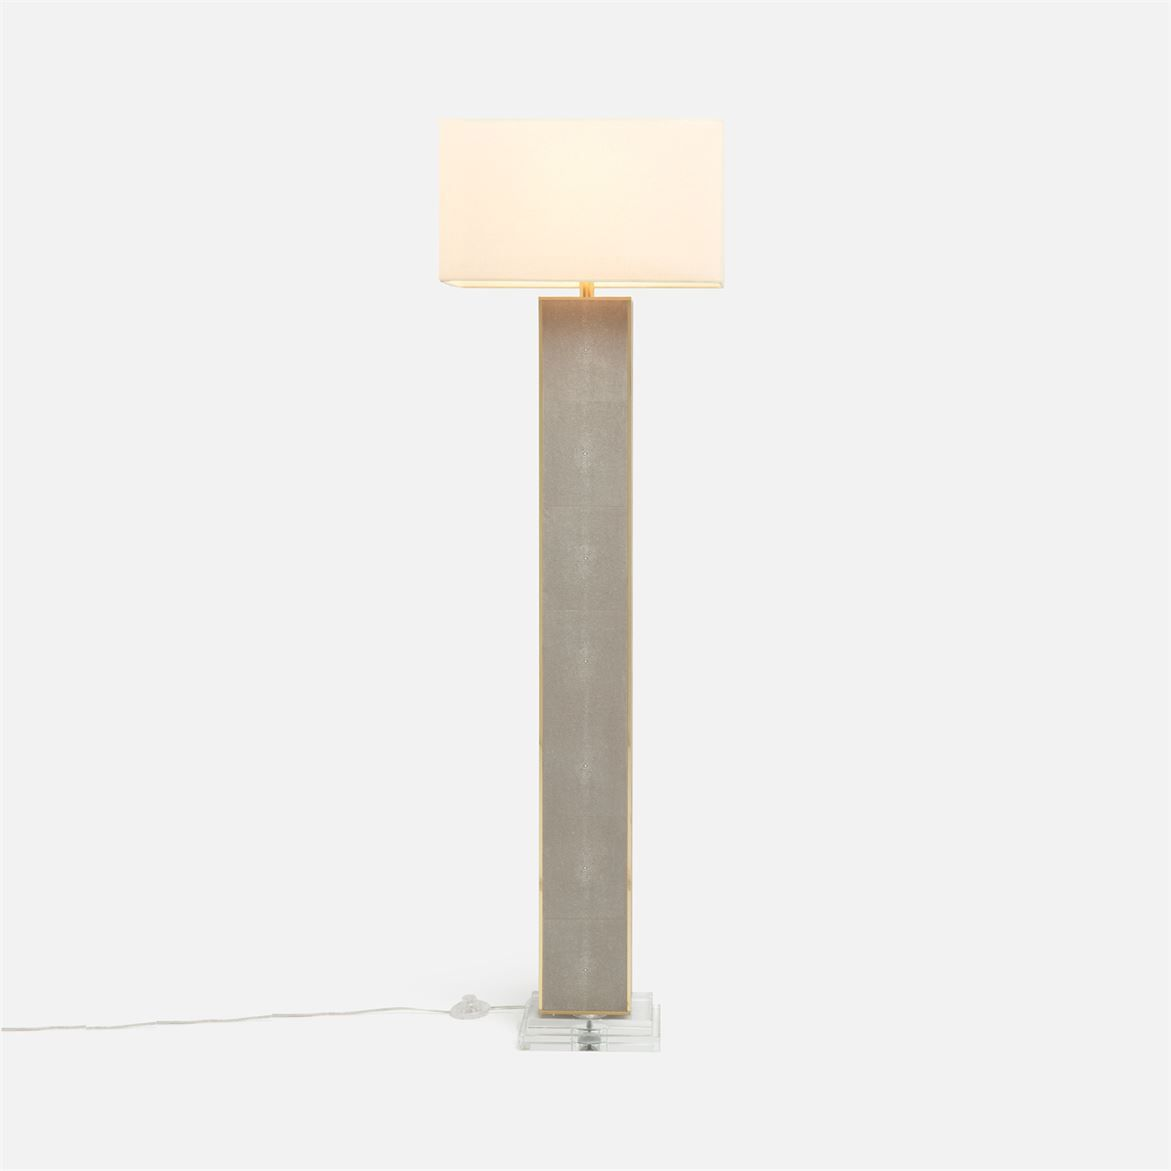 Made Goods in 2020 (With images) Floor lamp